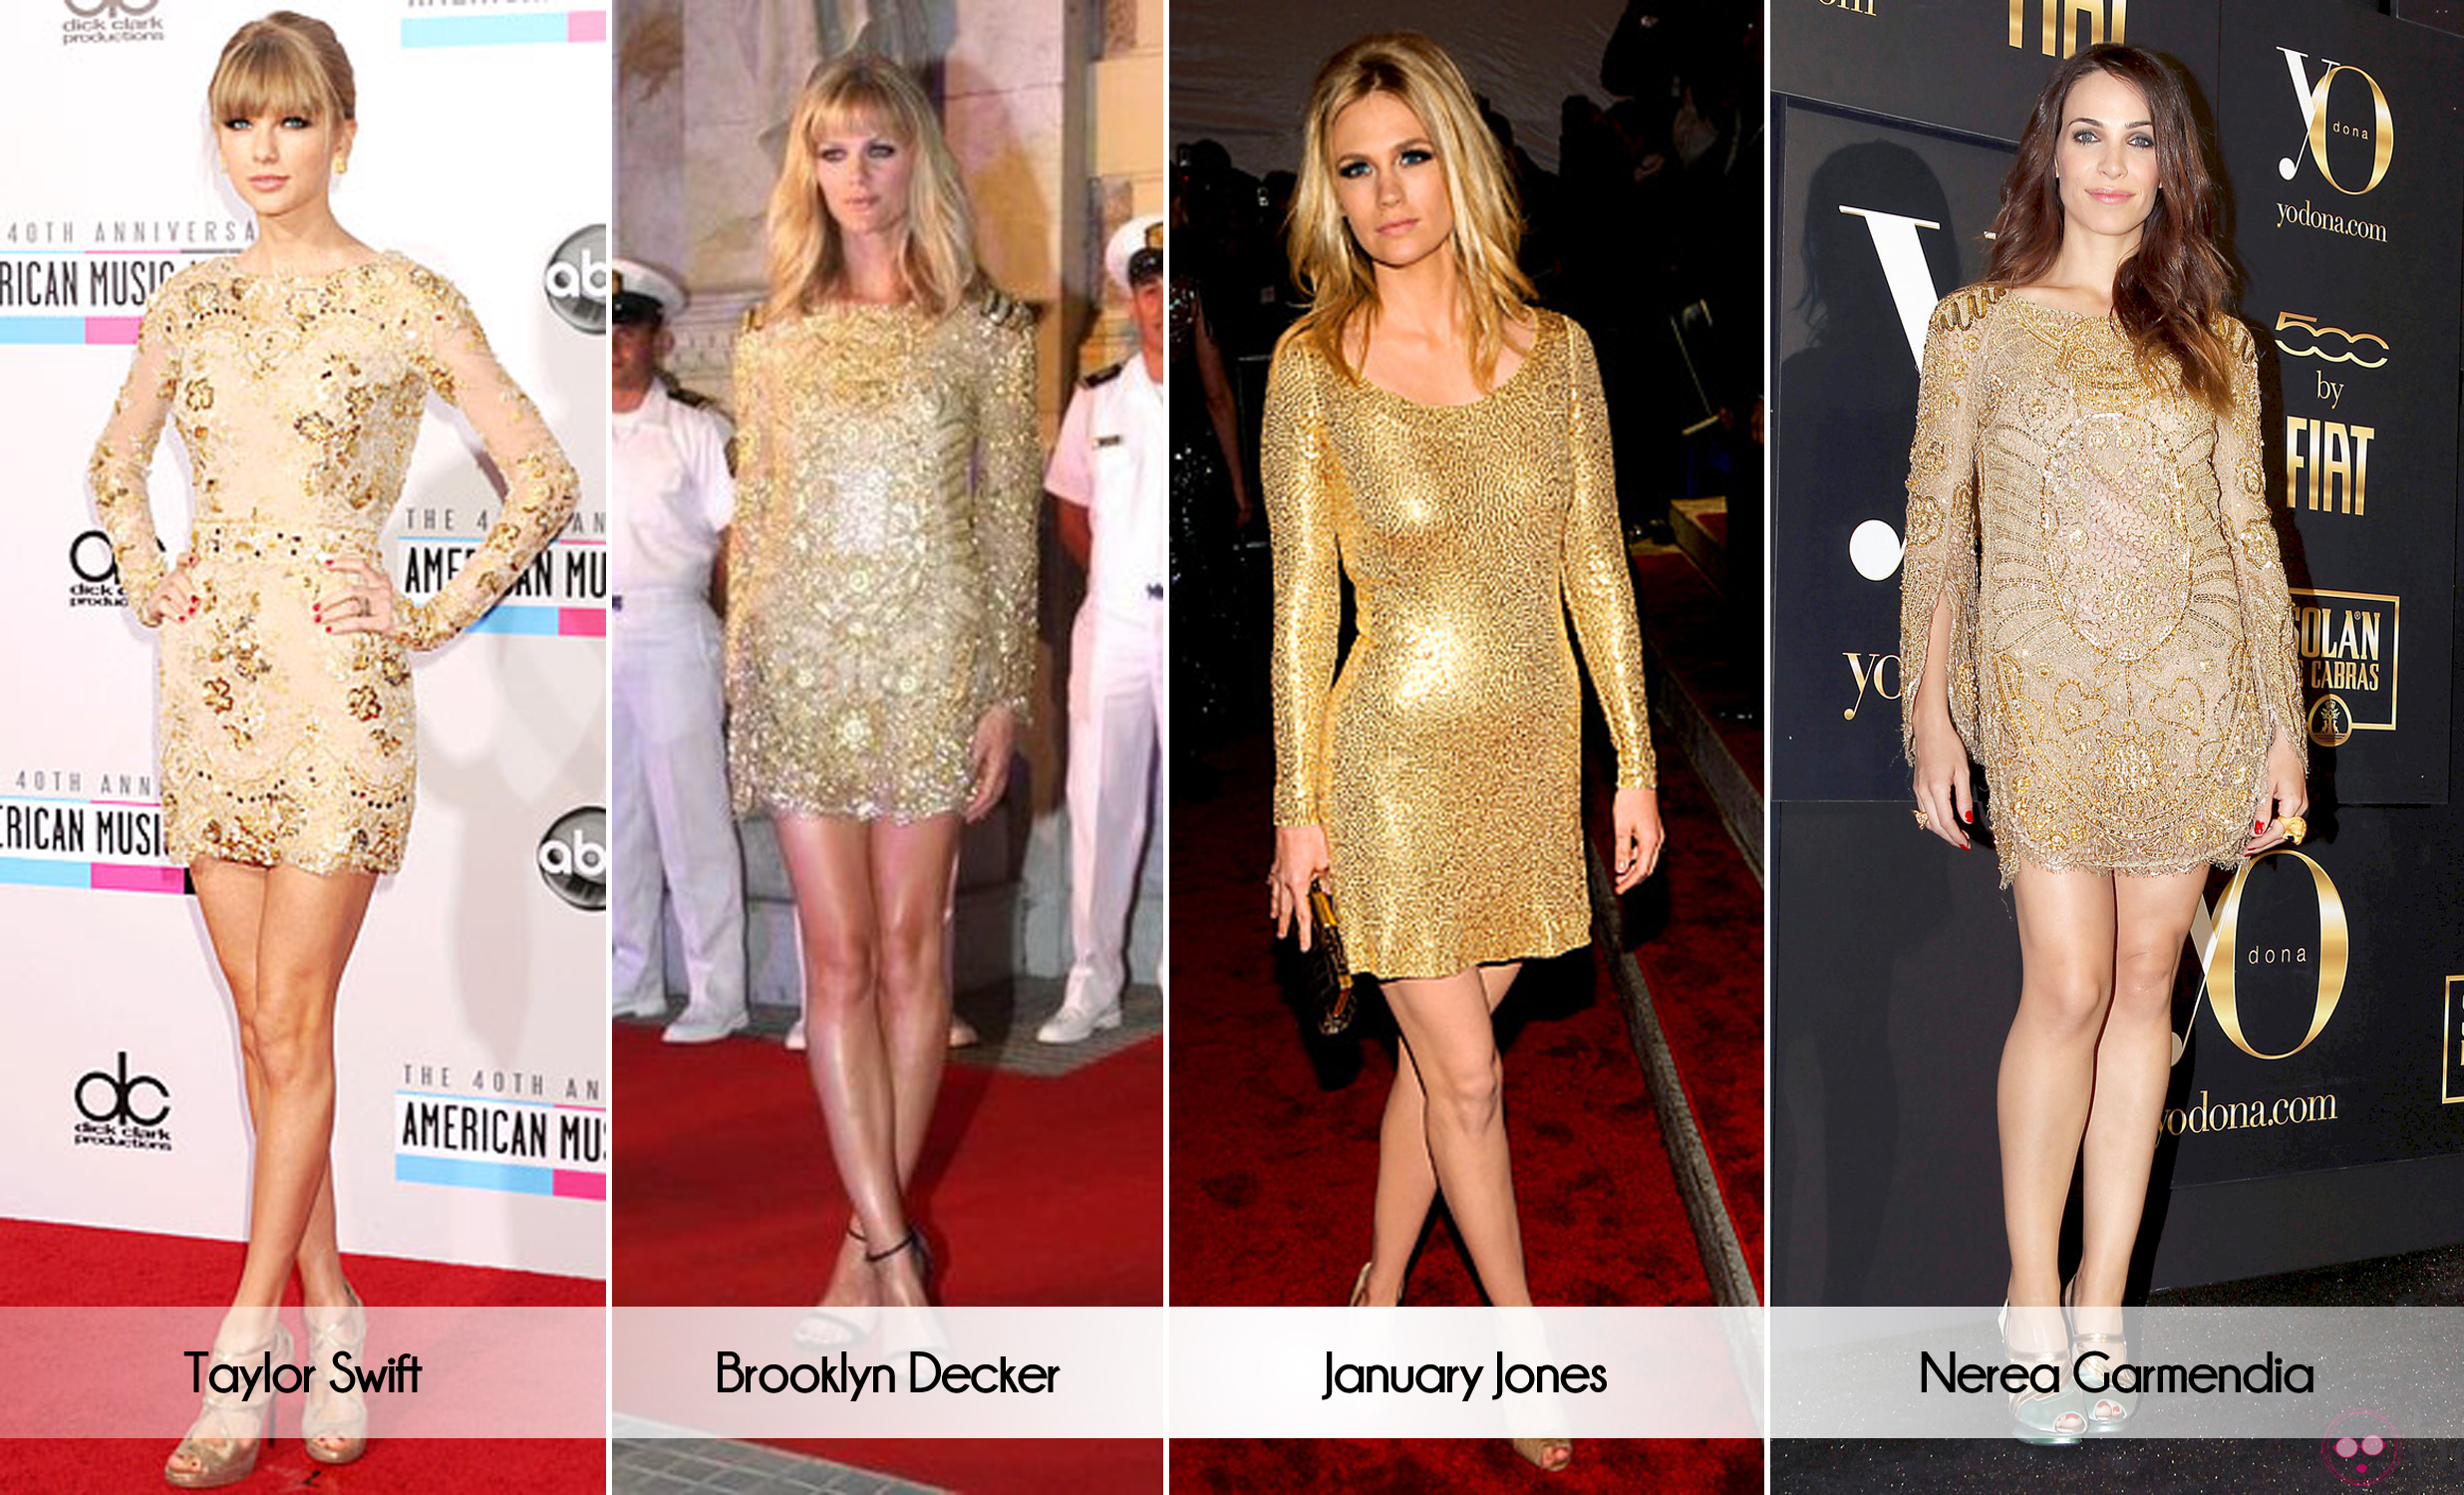 celeb look alike dresses